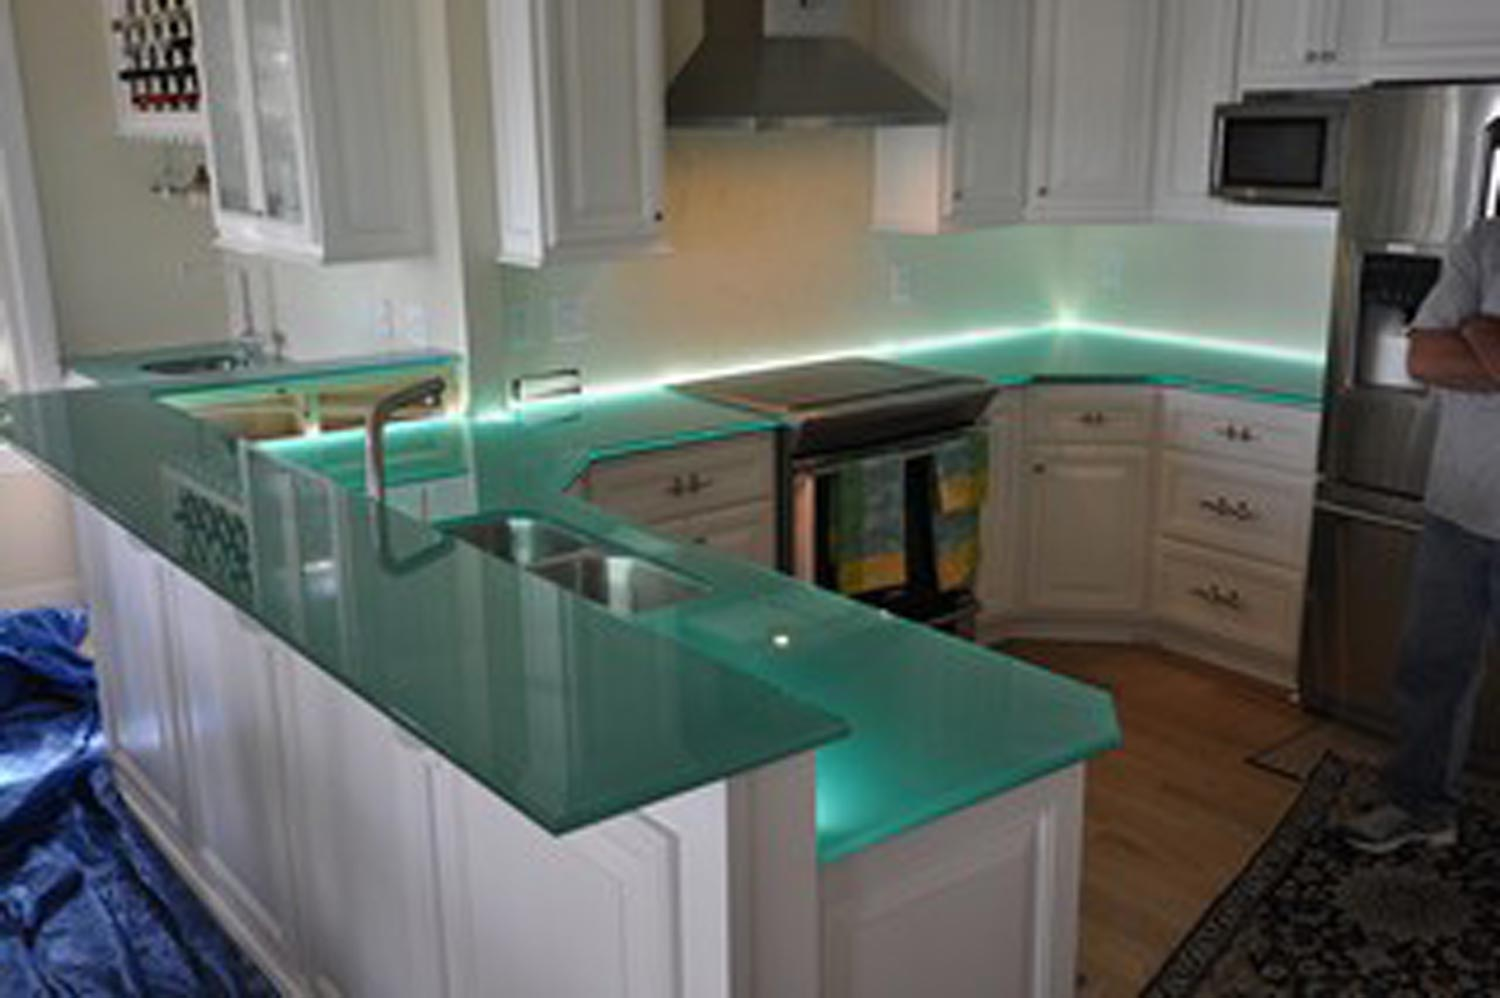 Countertop Kitchen : glass kitchen countertops this is something different in a kitchen